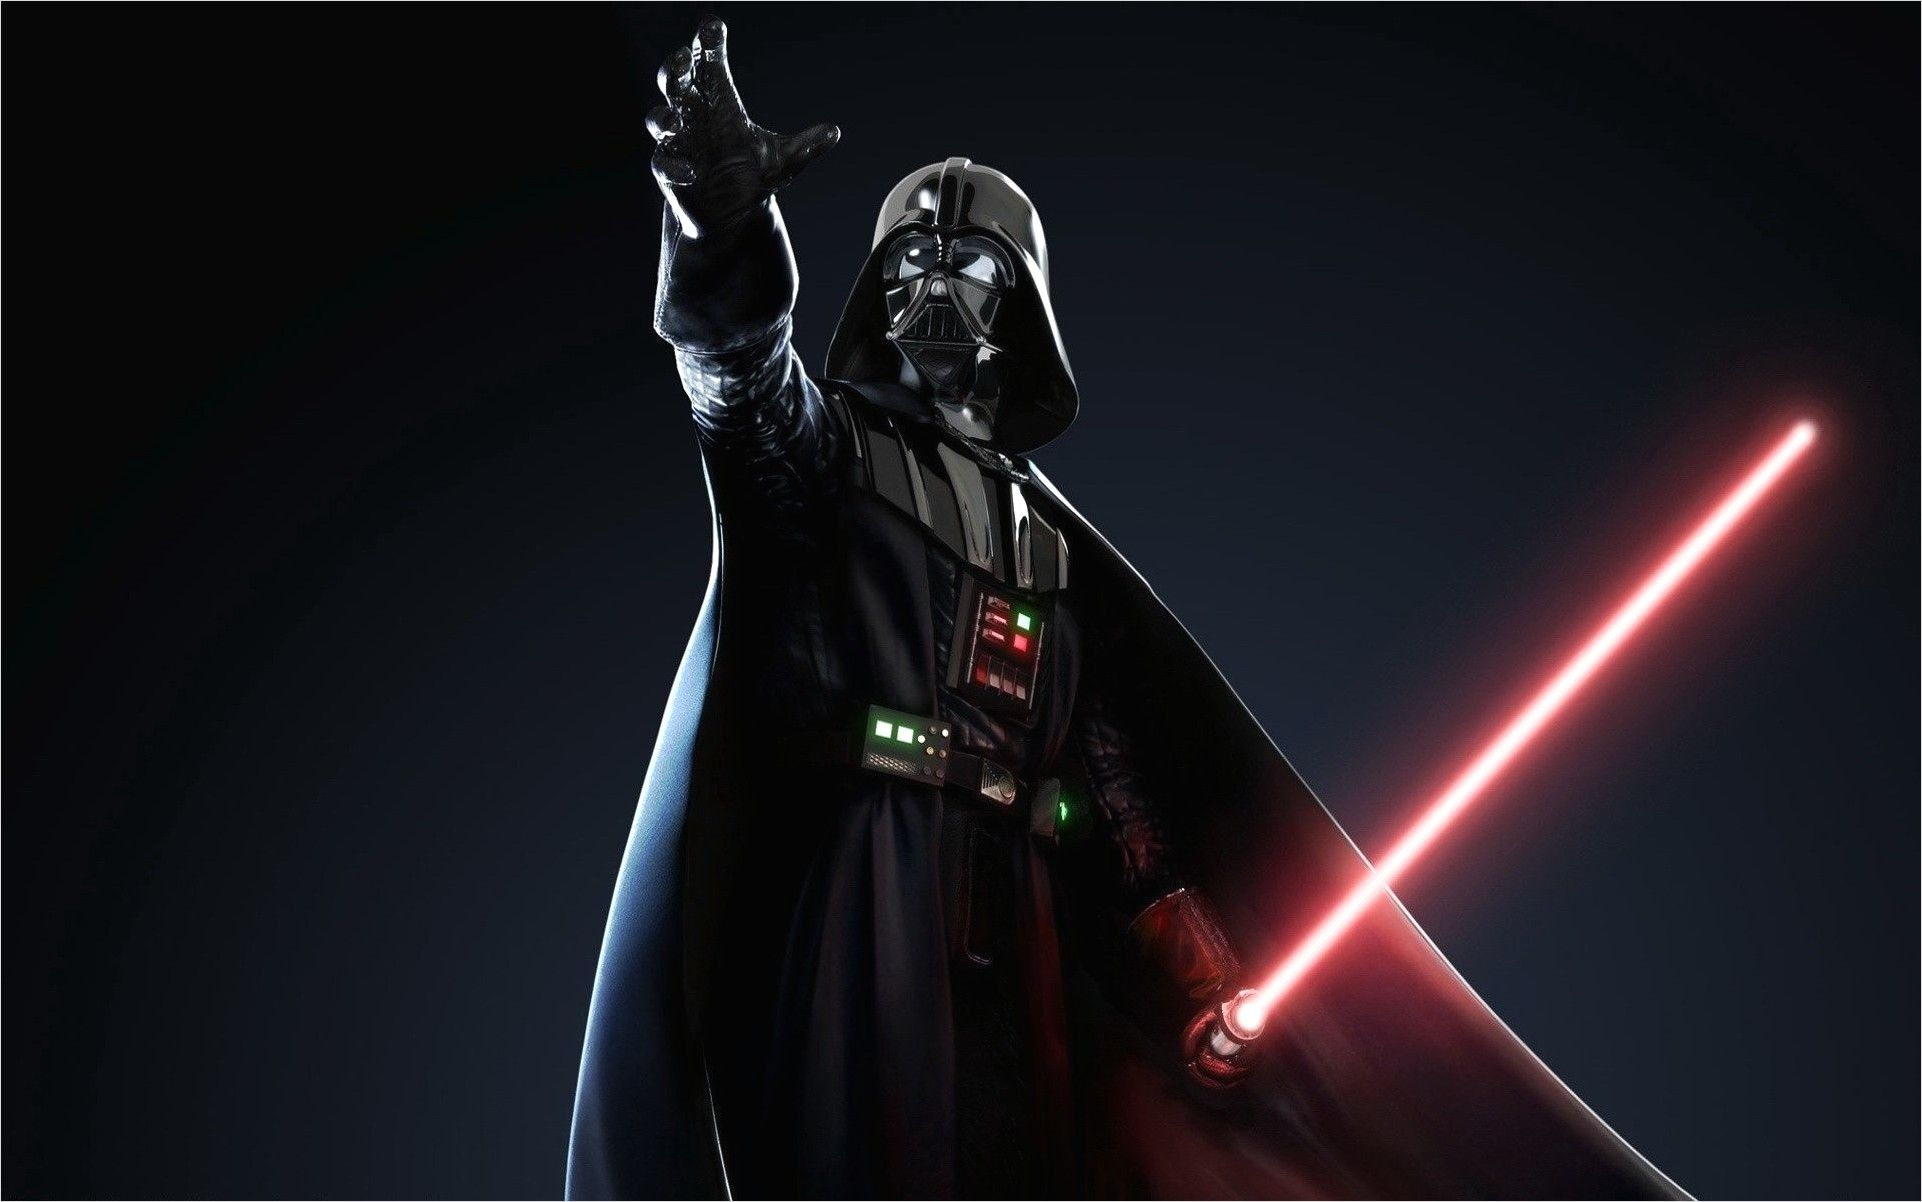 4k Darth Vader Wallpaper Ultrawide In 2020 Darth Vader Wallpaper Star Wars Wallpaper Darth Vader Hd Wallpaper